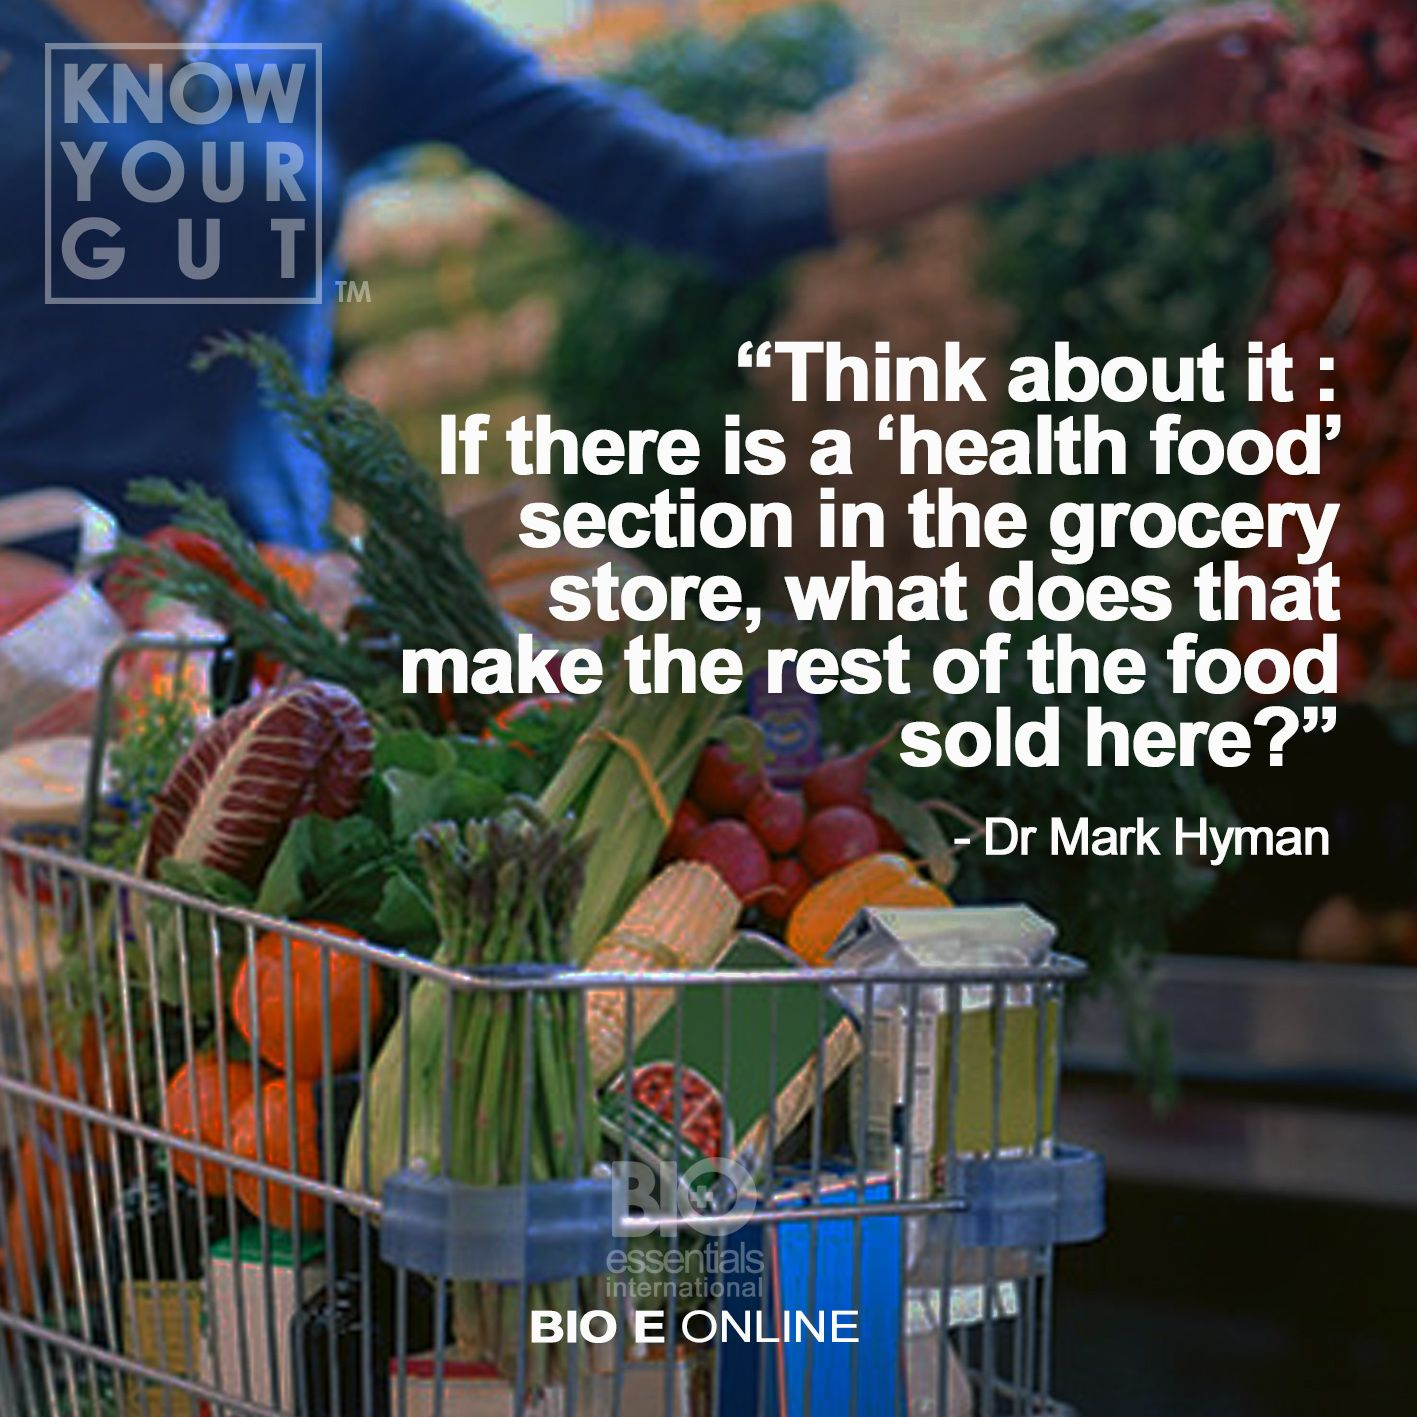 Can i buy healthy food online - Think About It If There Is A Health Food Section In The Grocery Store What Does That Make The Rest Of The Food Sold Here